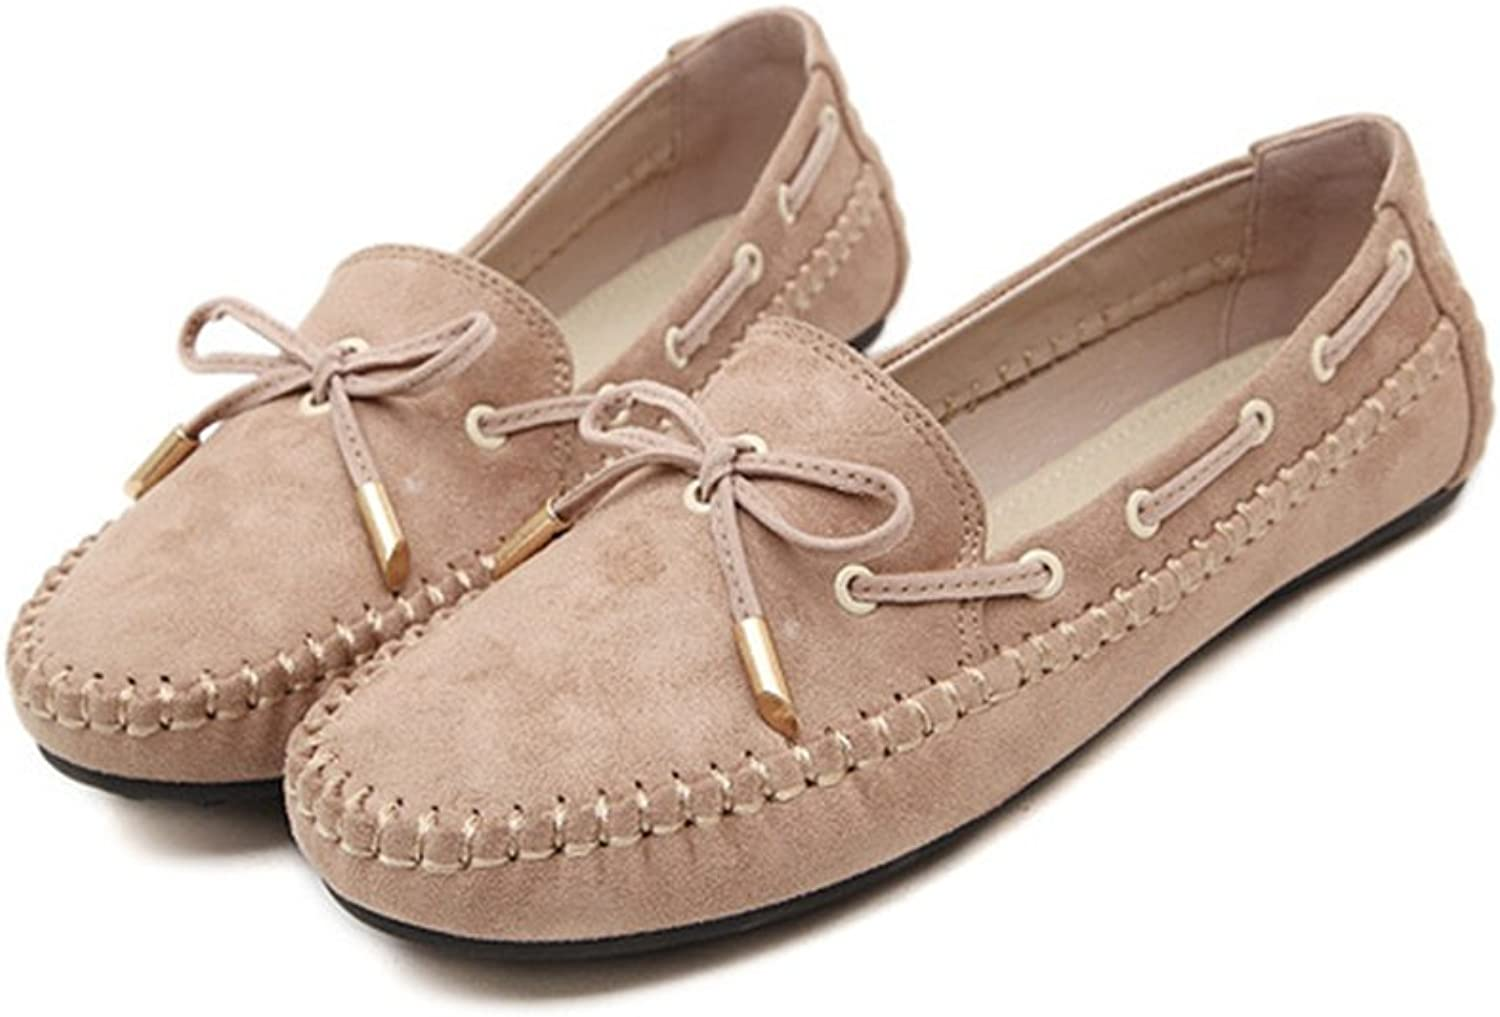 Duberess Women's Mule shoes Anti-Slipping Driving Style Moccasin Slip-on Flat Loafer shoes